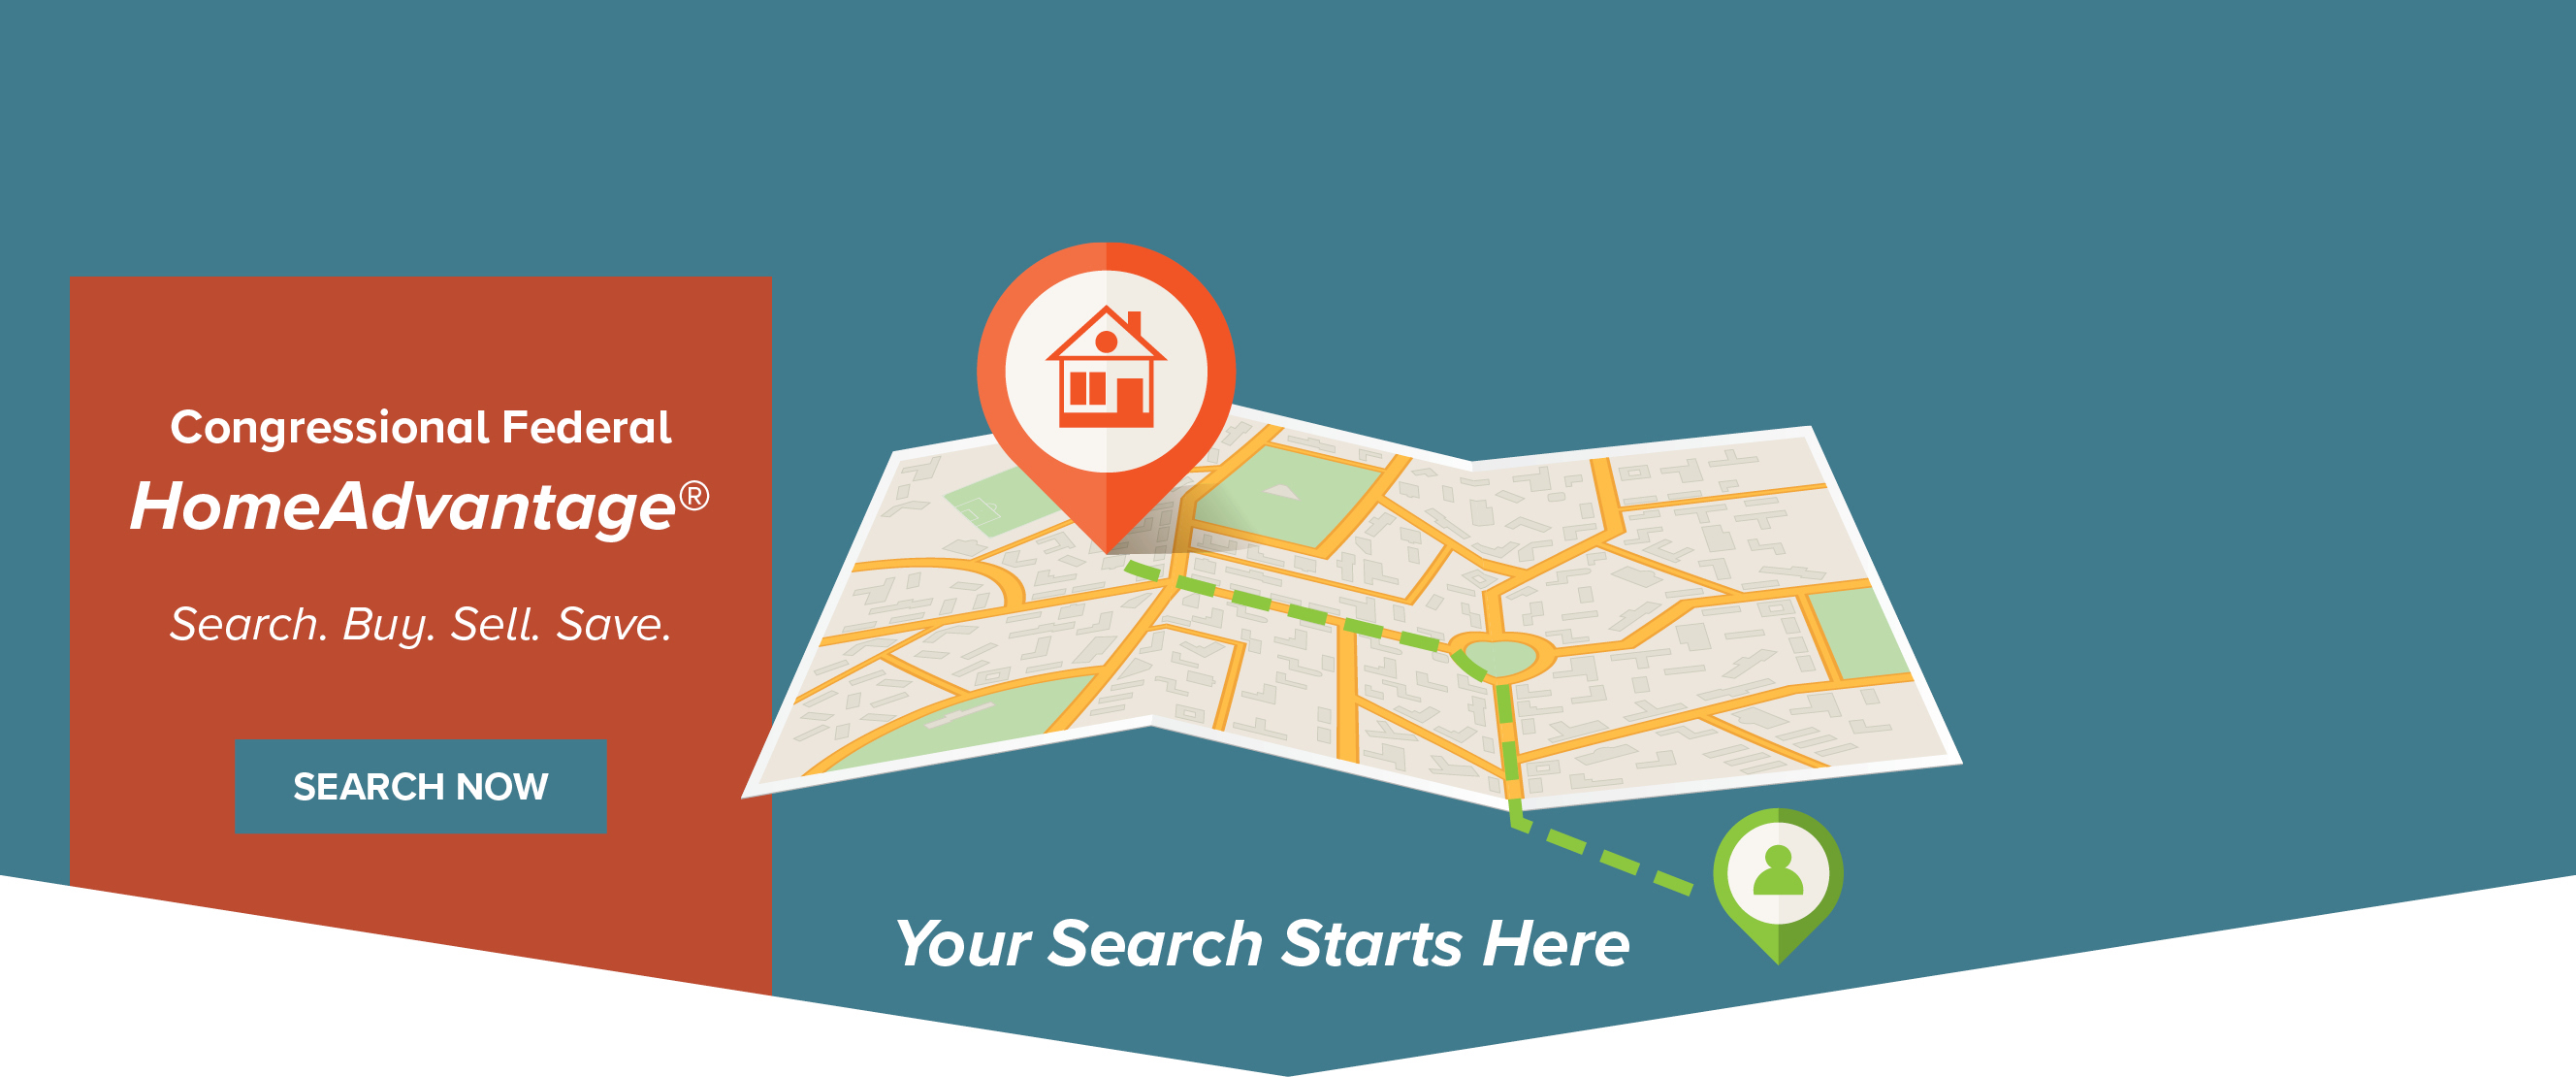 Home Advantage. Search. Buy. Sell. Save. Your Search Starts Here